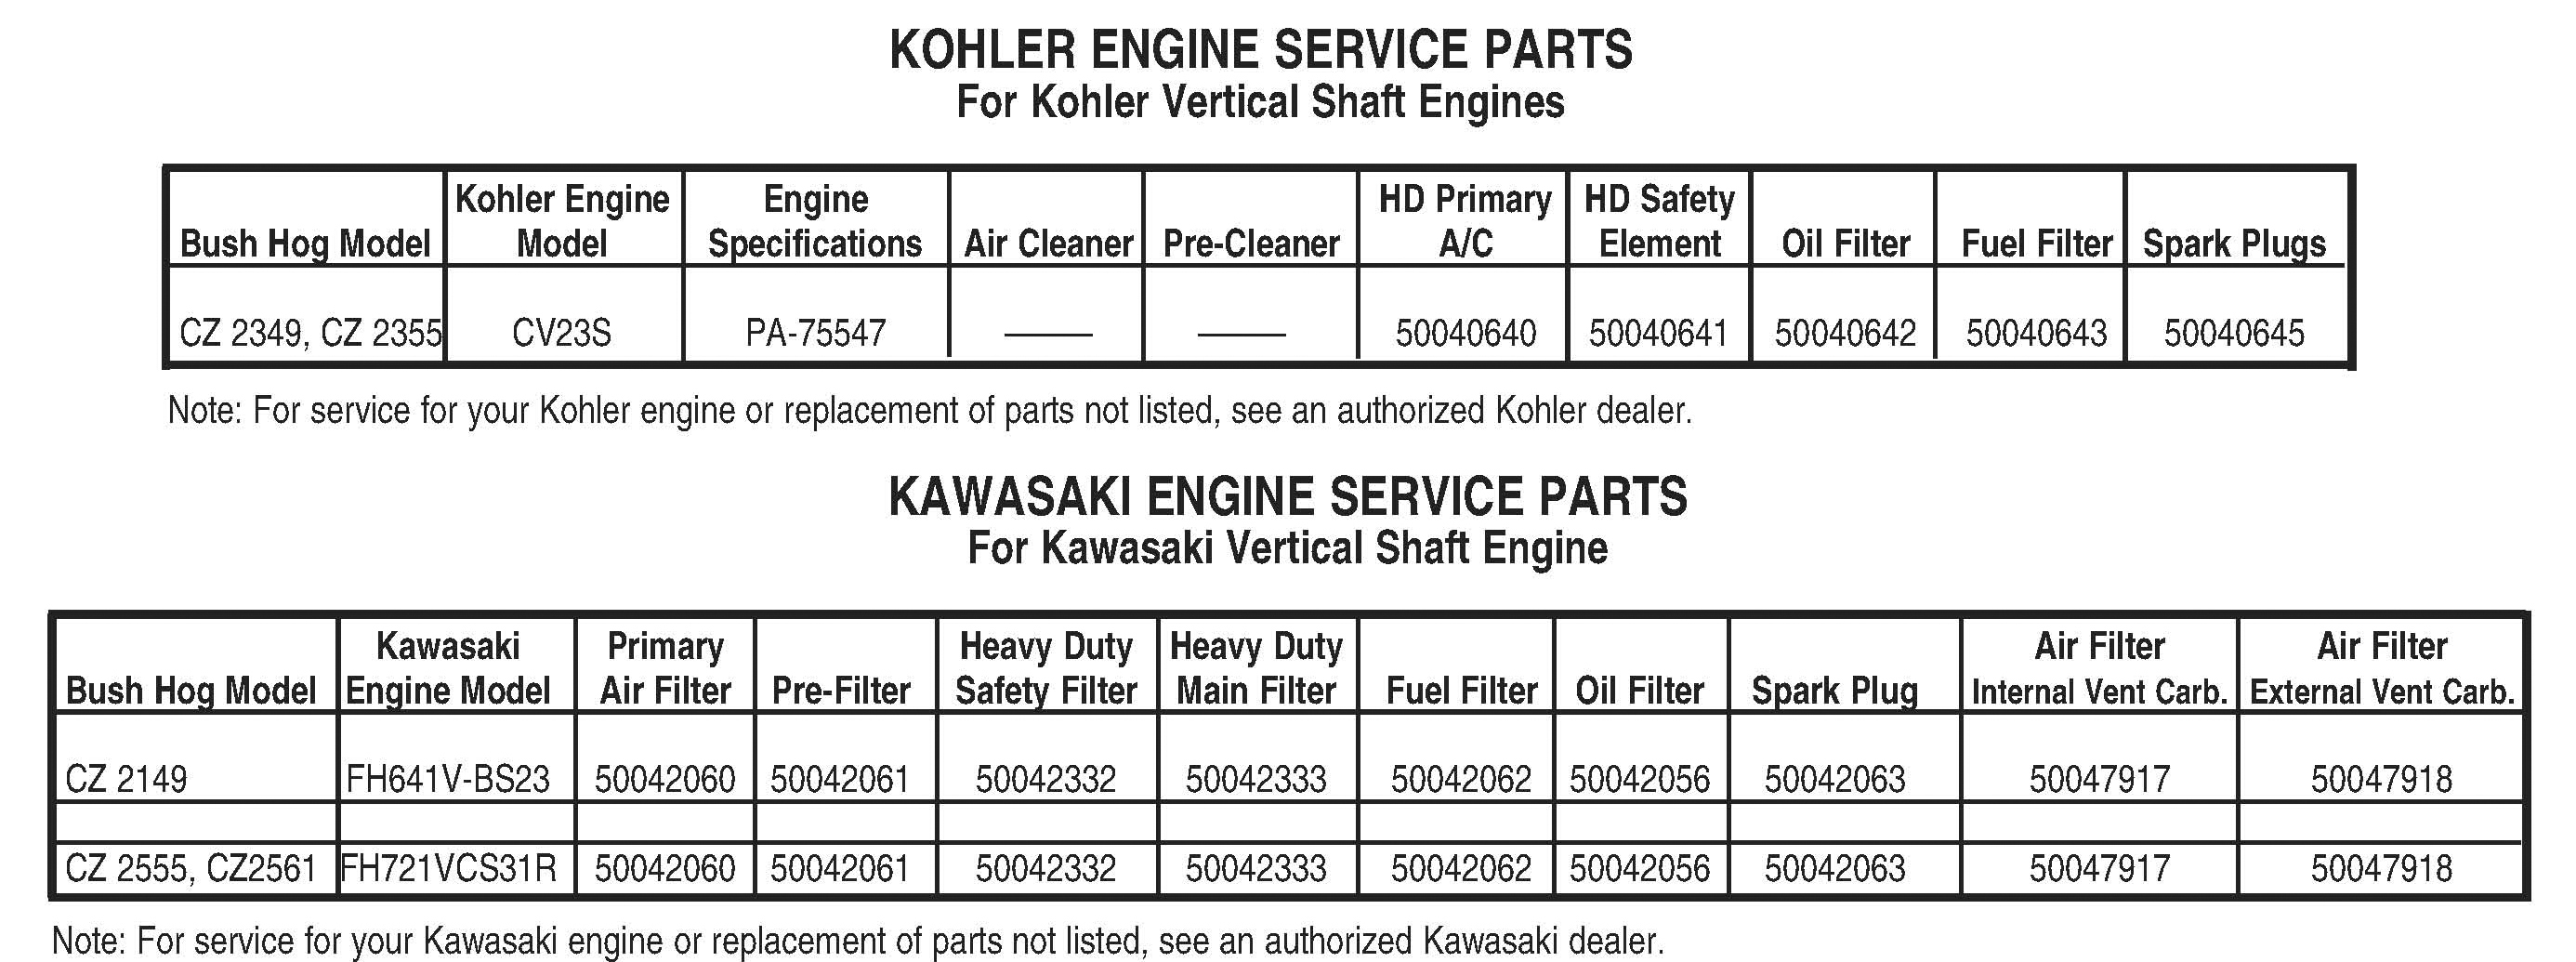 Kohler Engine 6 4 Cz Electrical Diagram Bush Hog Commercial Series Zero Turn Mowers Parts Hover Over Image For Expanded View